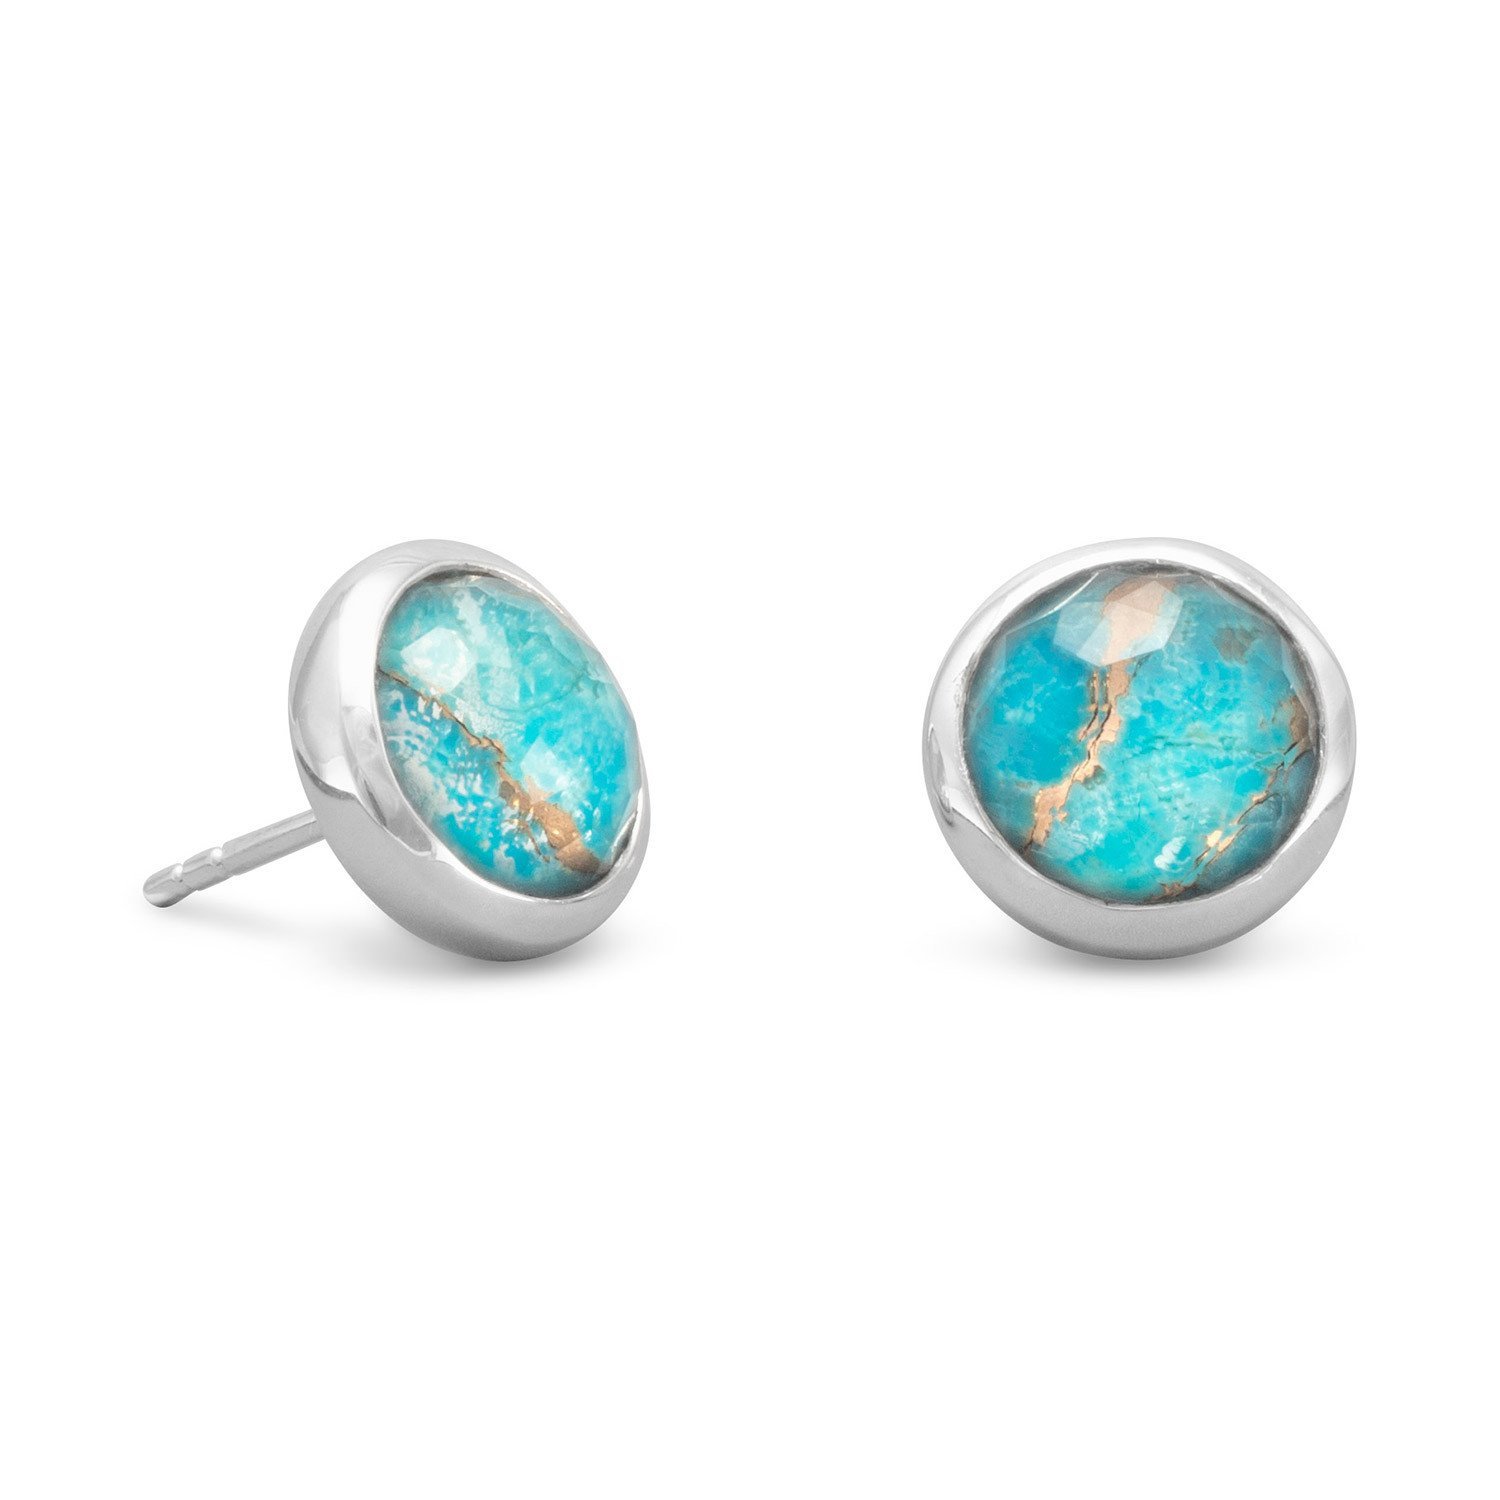 Round Freeform Faceted Quartz over Turquoise Earrings